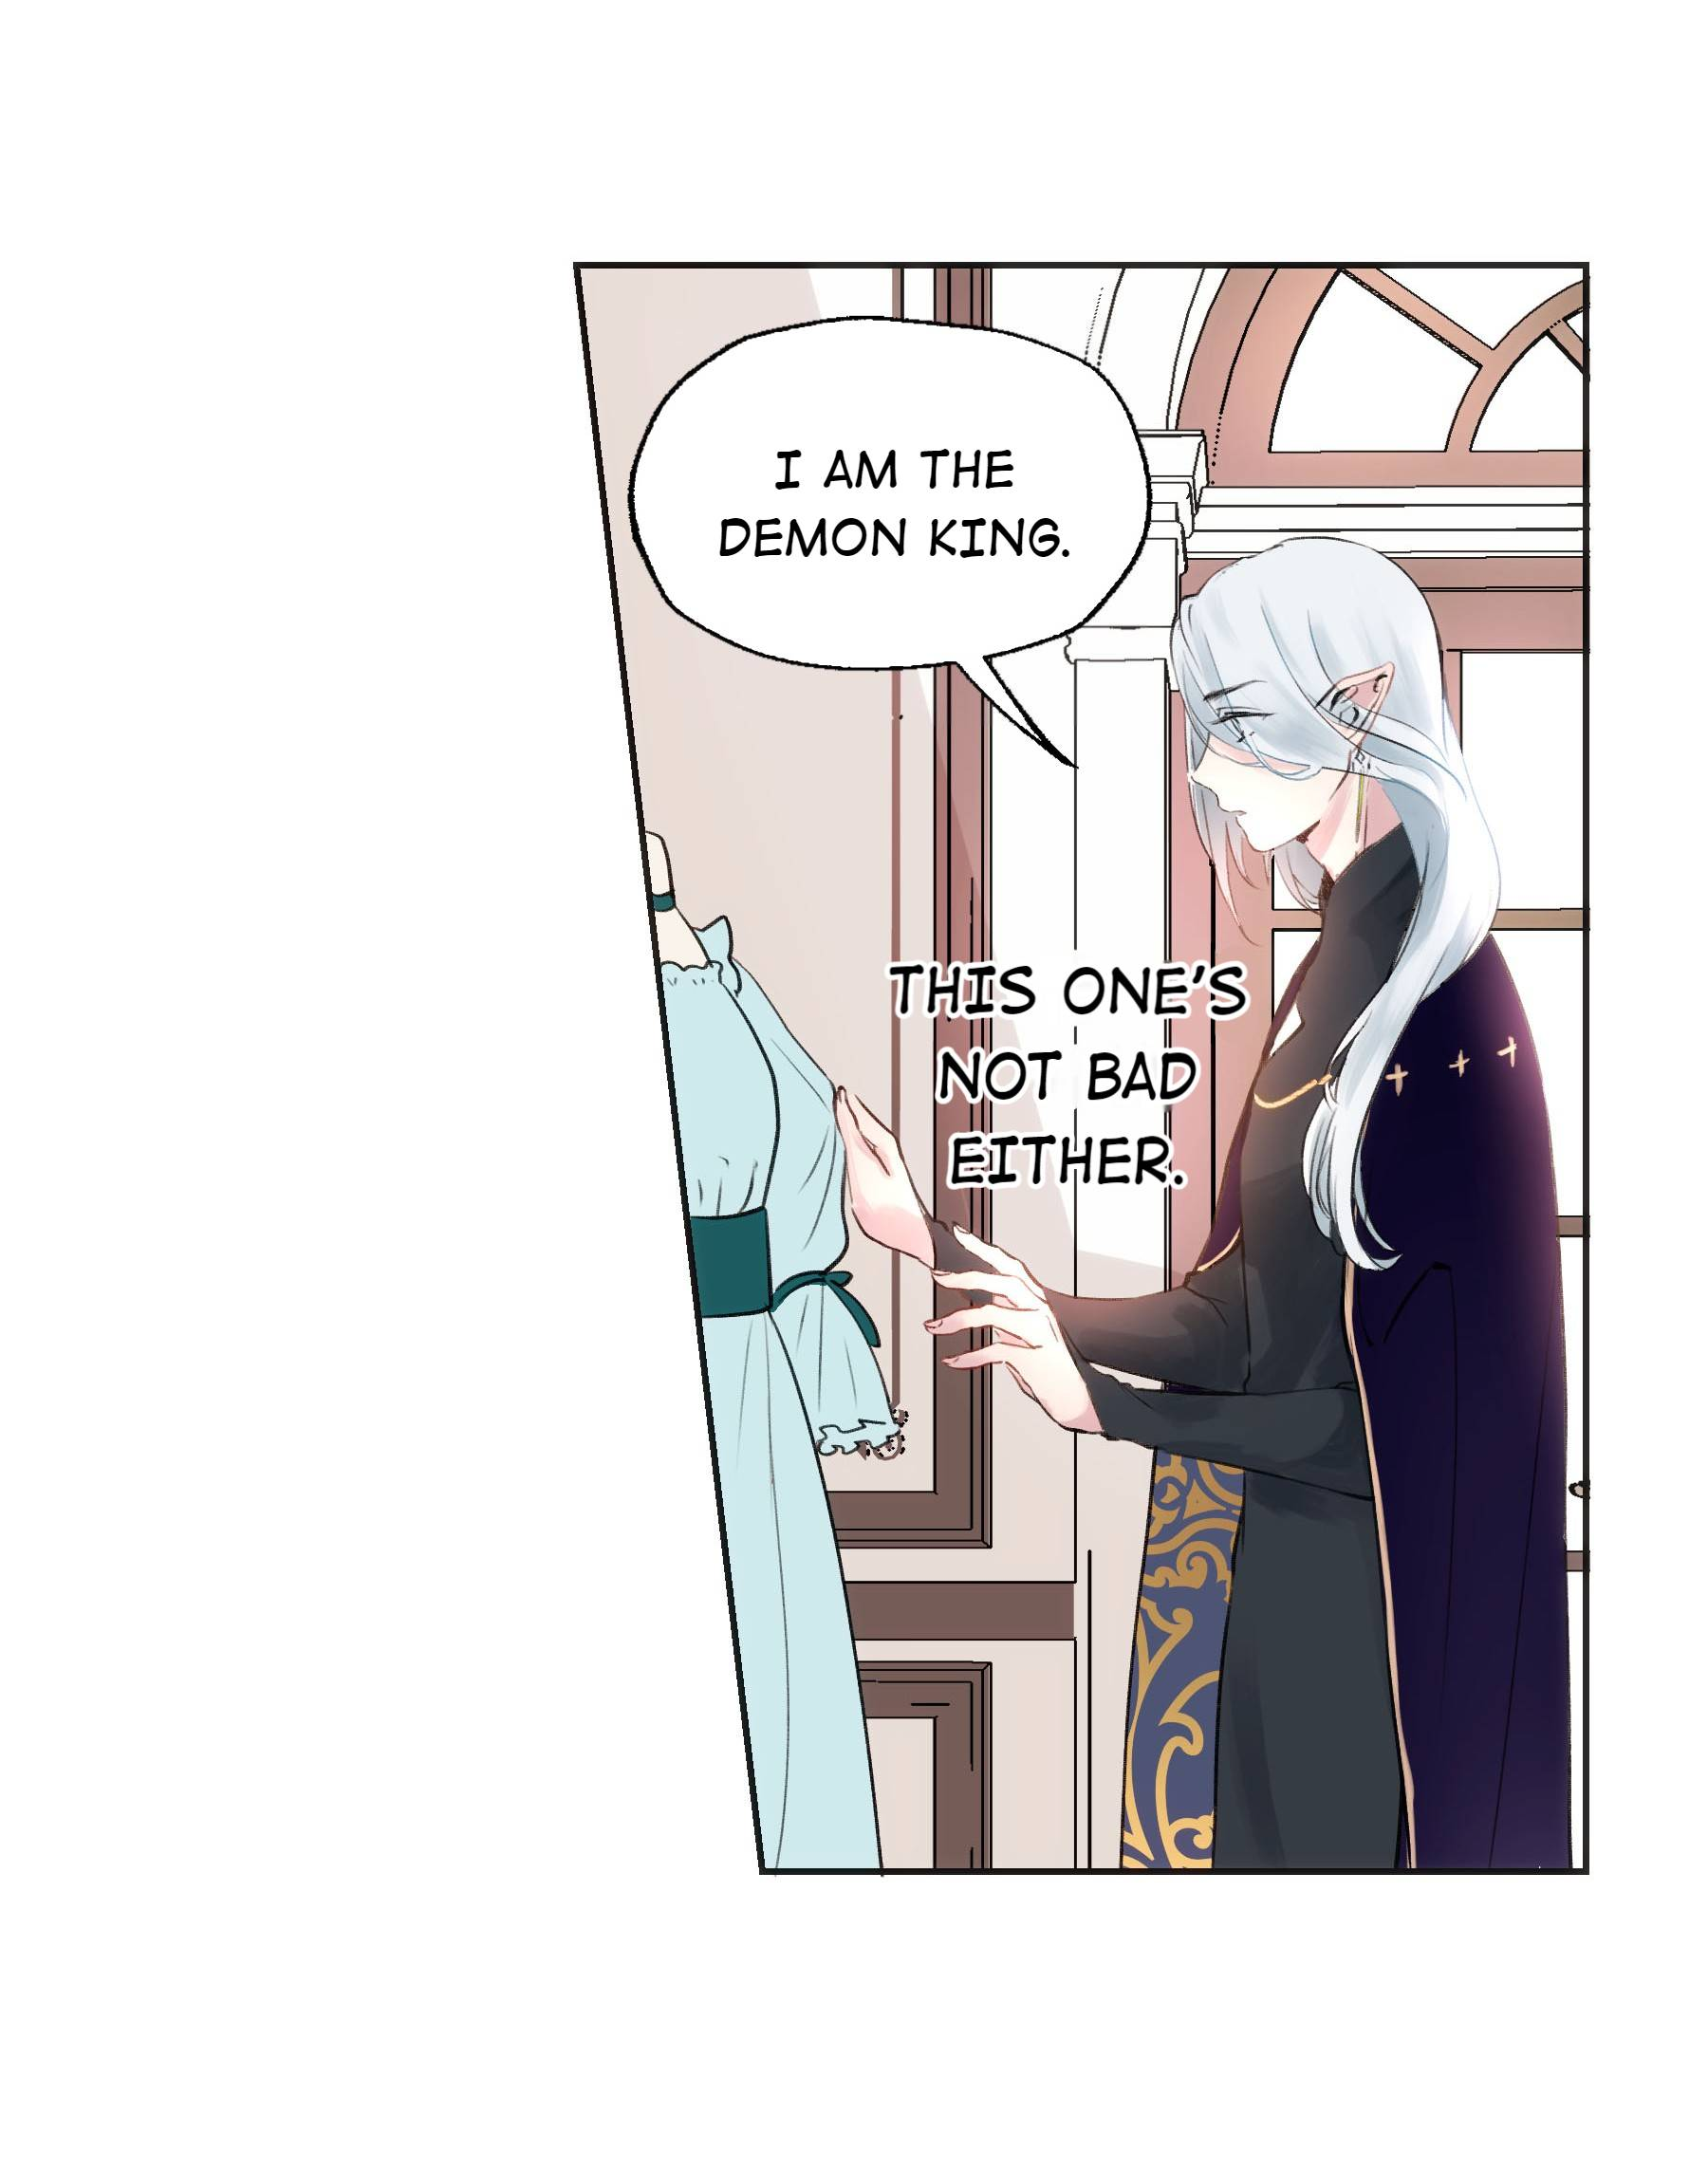 The Demon King Wants To Be Friends With Me - chapter 2 - #3